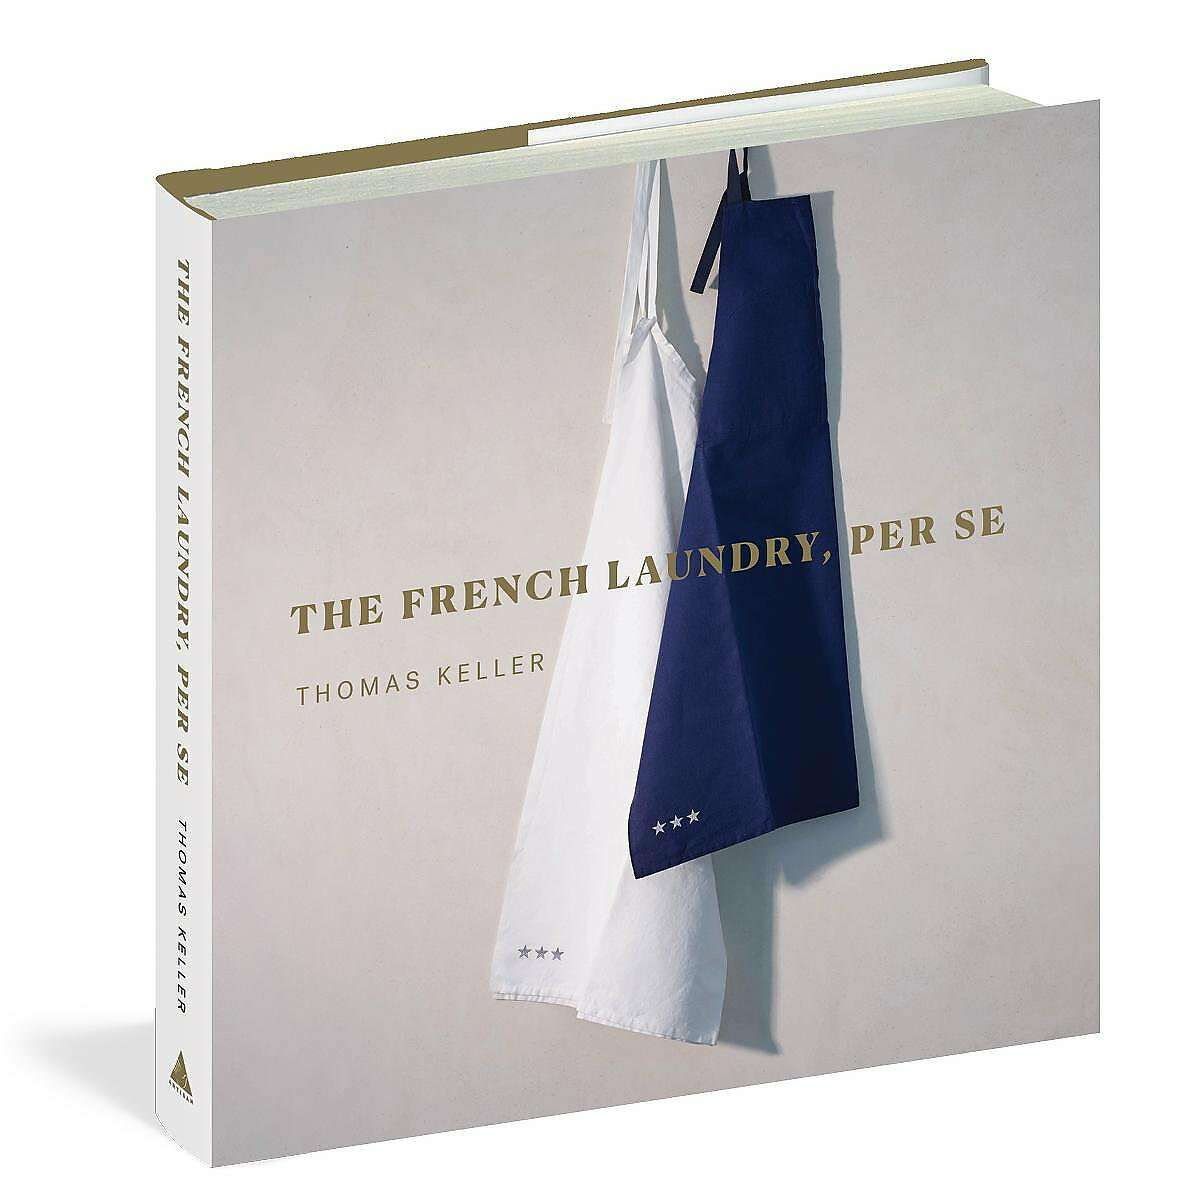 """""""The French Laundry, Per Se,"""" by Thomas Keller (Workman Publishing; 394 pages; $75 hardback; $24.95 online edition)."""